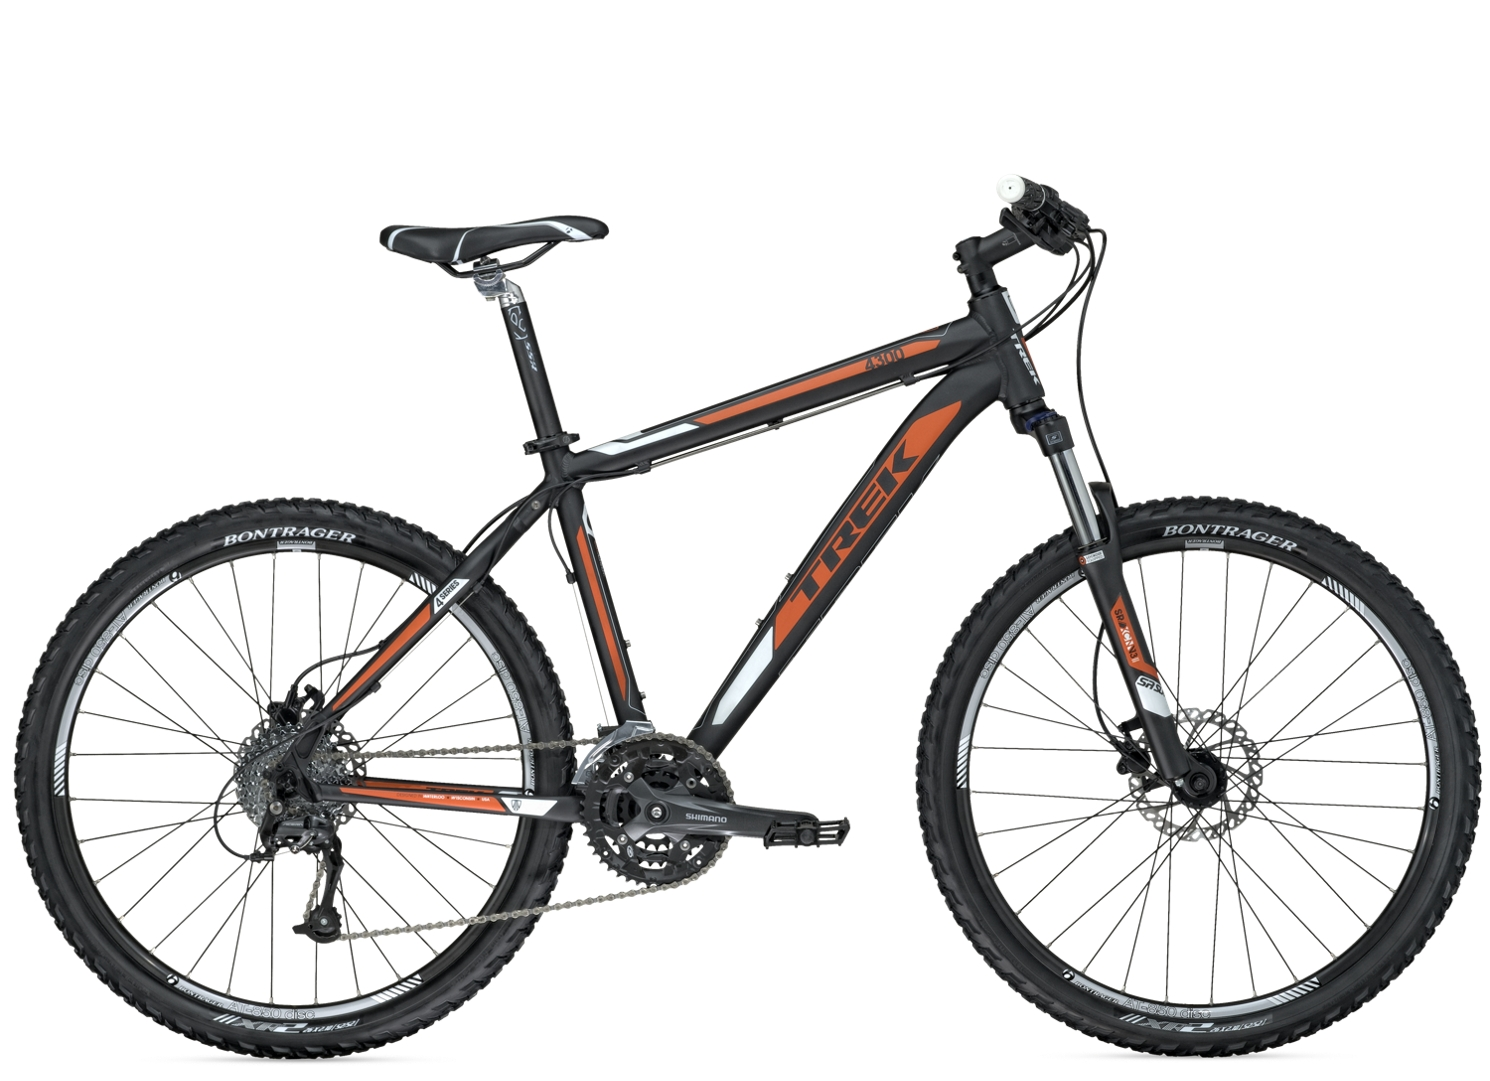 2012 4300 Disc Bike Archive Trek Bicycle